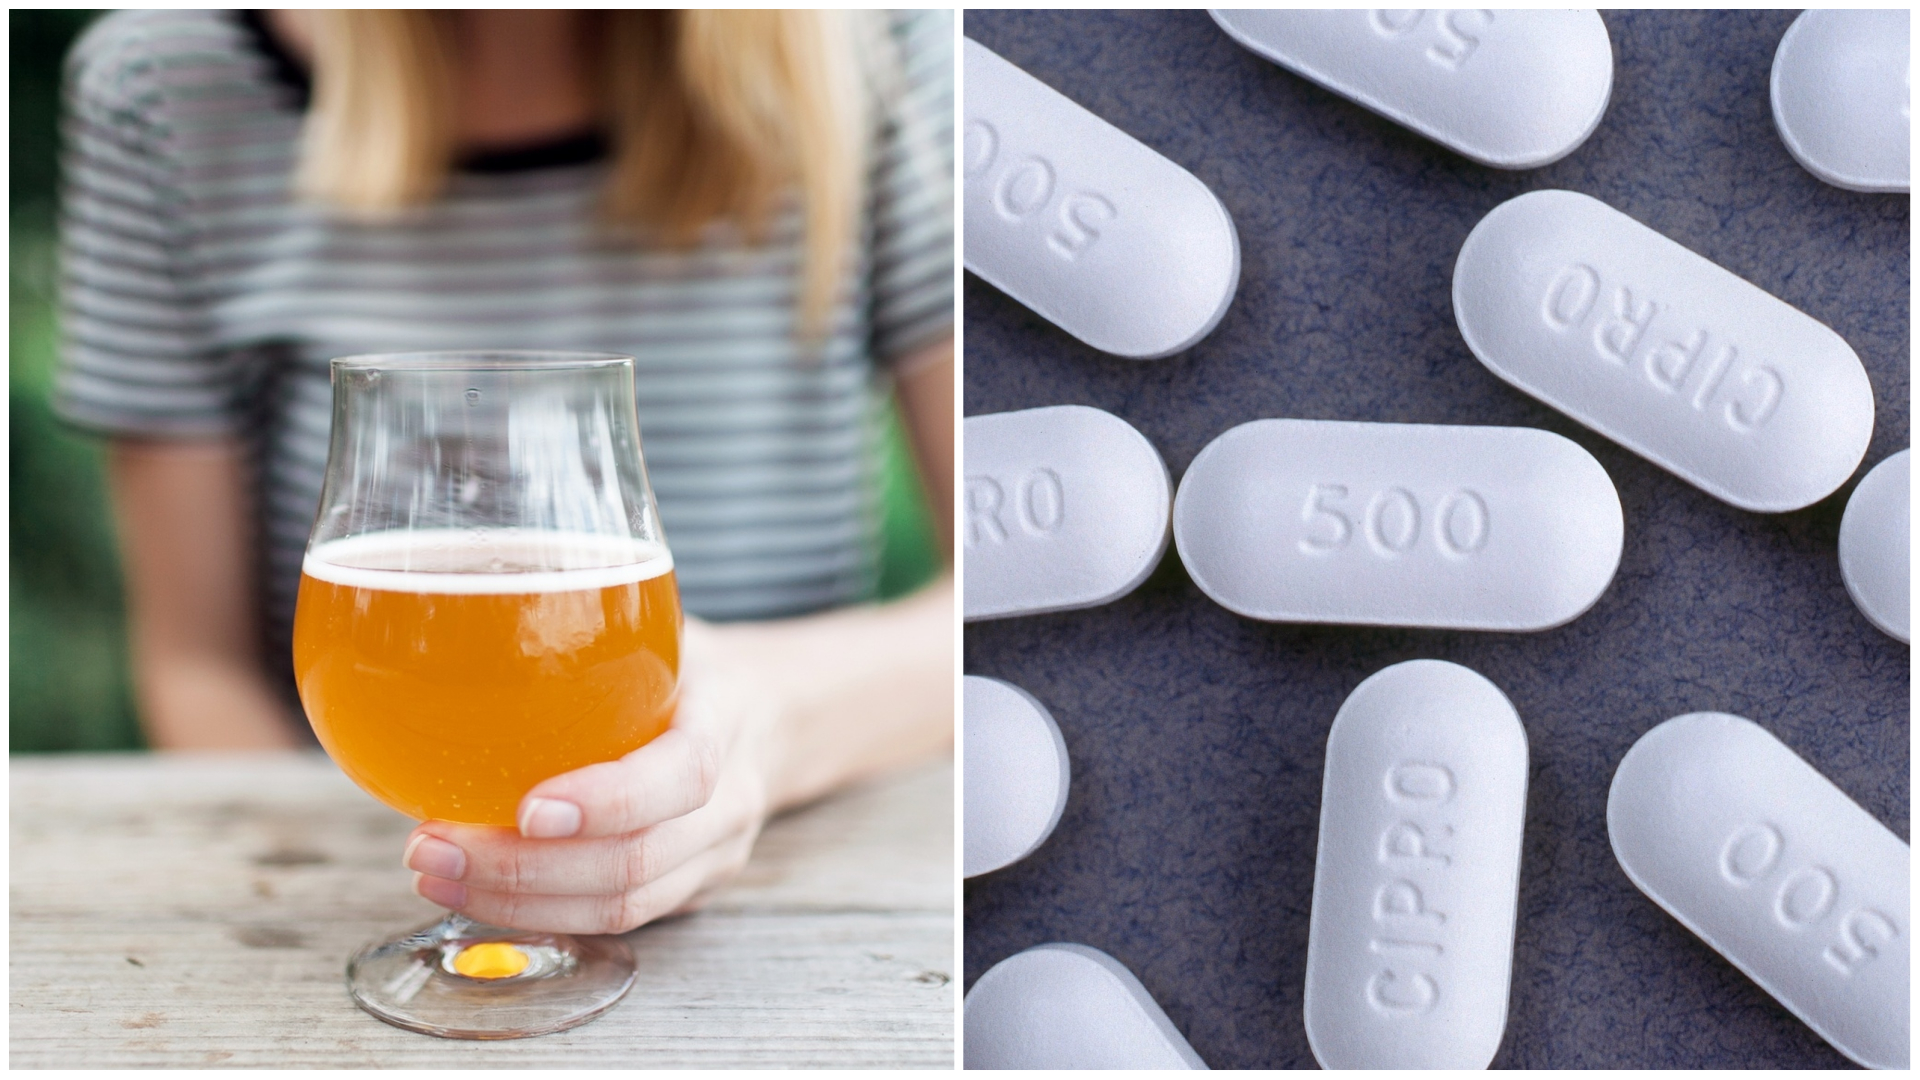 Can i drink beer with amoxicillin